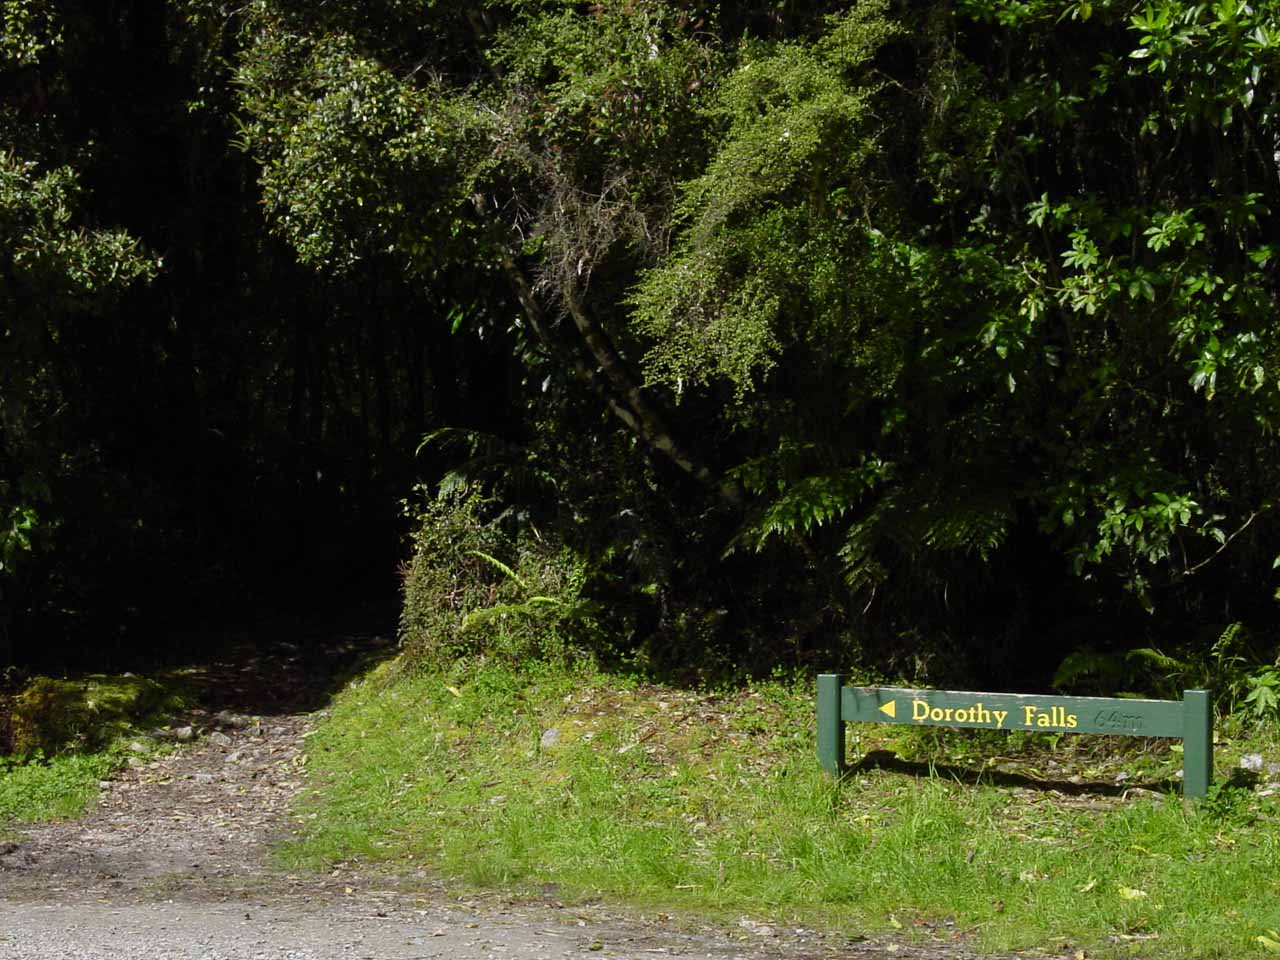 The signposted short track to Dorothy Falls